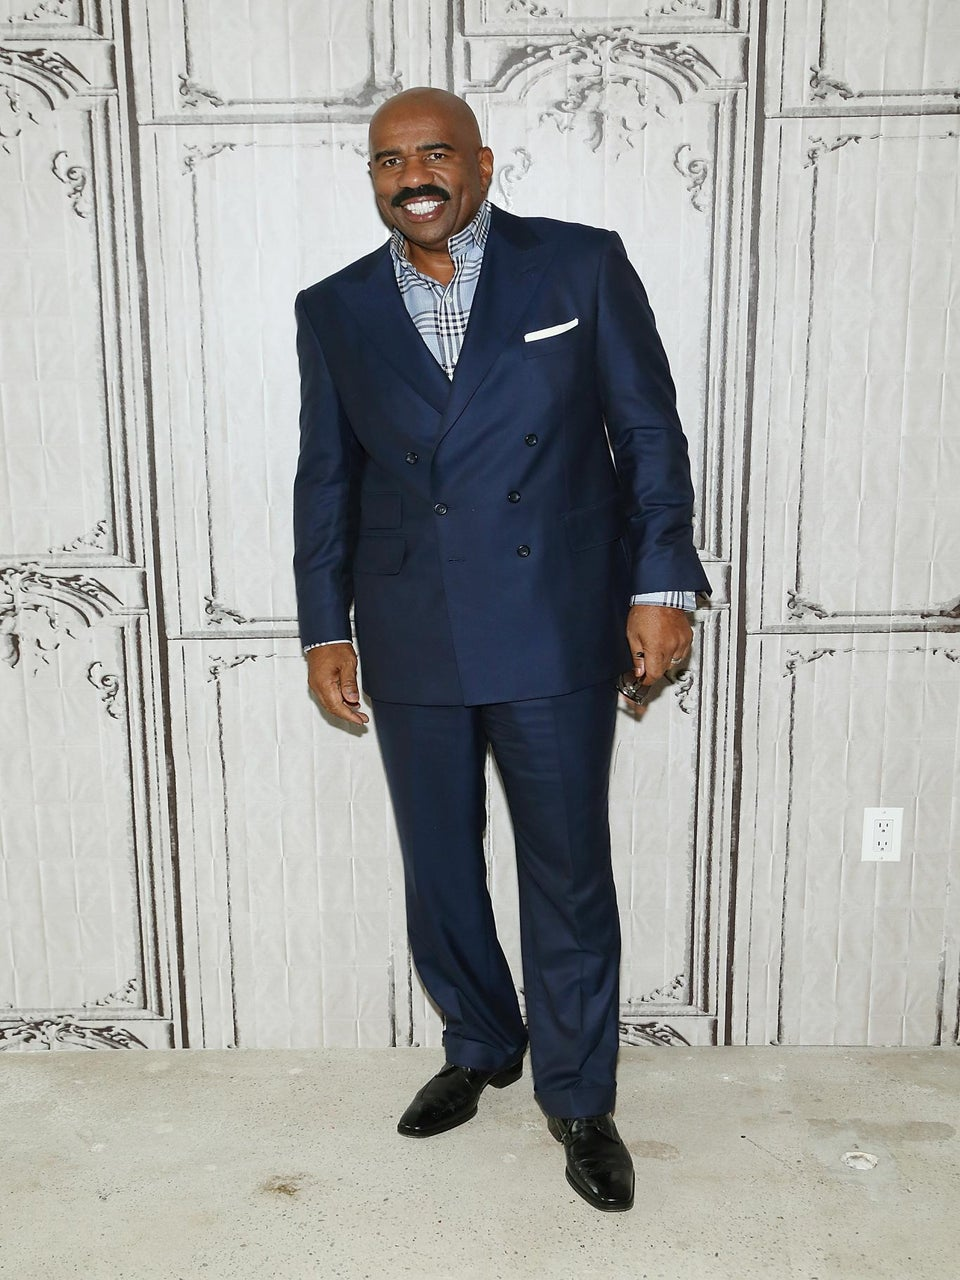 Here's What You Need to Know to Make Your Man a Better Lover According to Steve Harvey